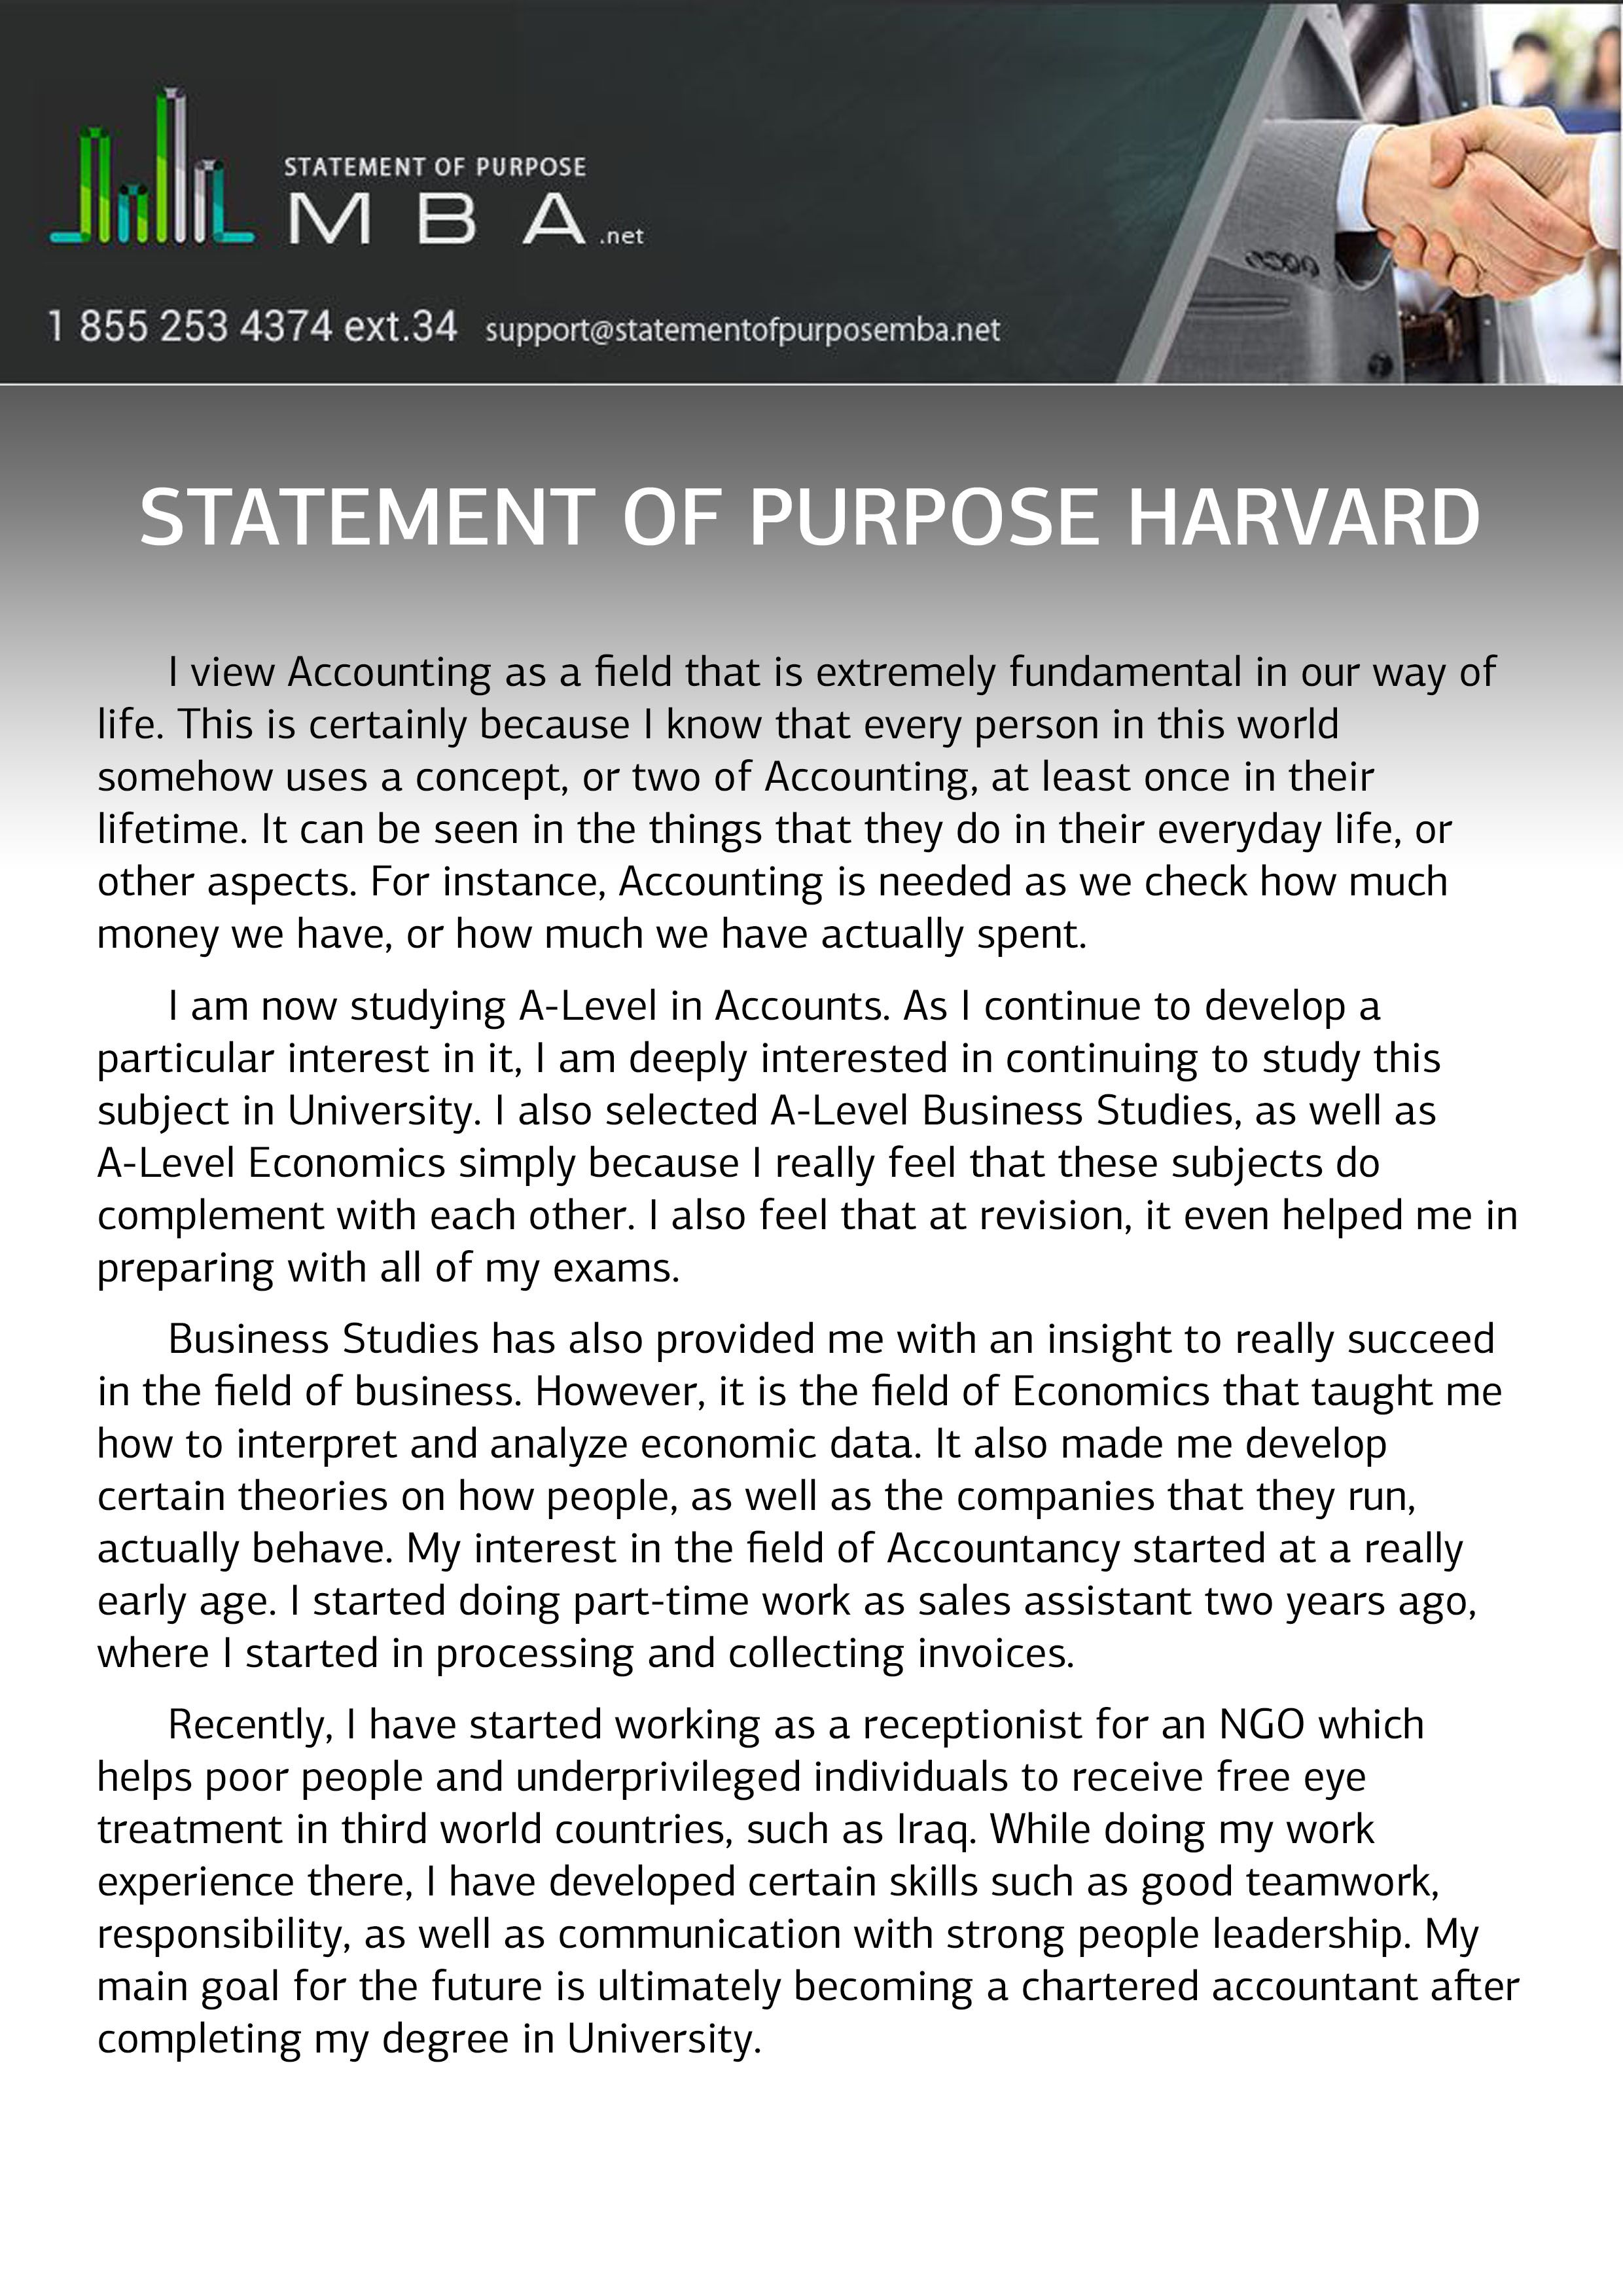 Pin By MBA SoP Samples On Sample Statement Of Purpose Harvard Academic Essay Writing Stanford